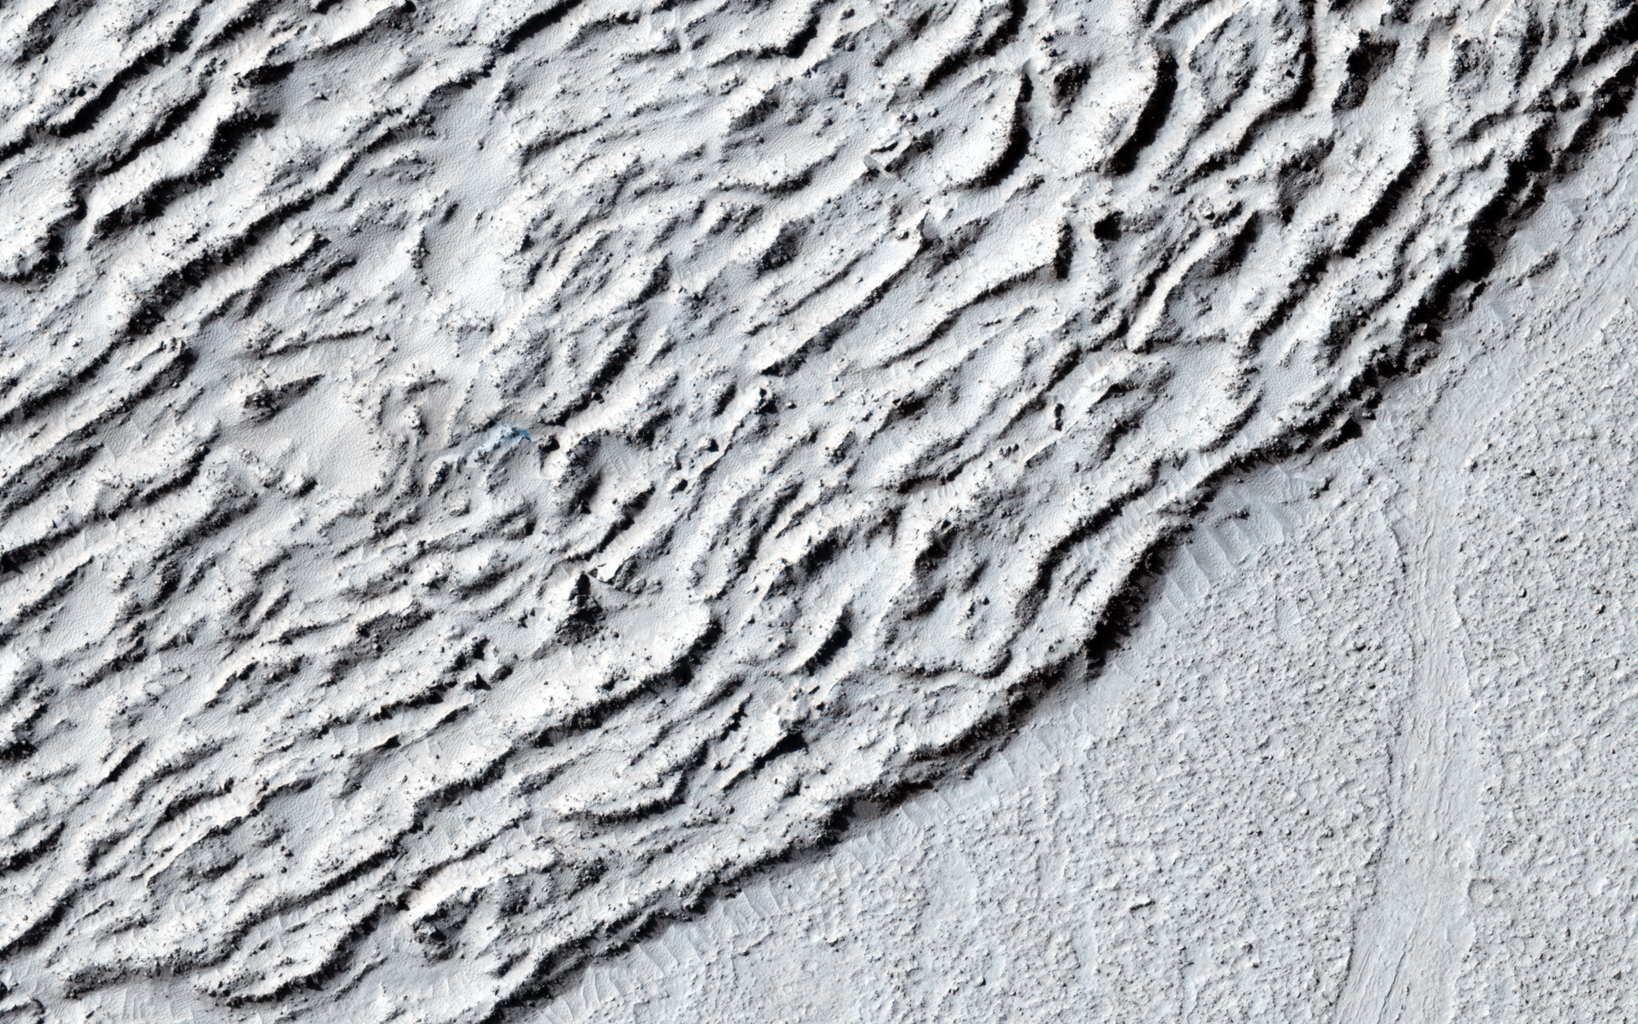 This image shows lava crumpled against the upstream side of an impact crater as seen by NASA's Mars Reconnaissance Orbiter.